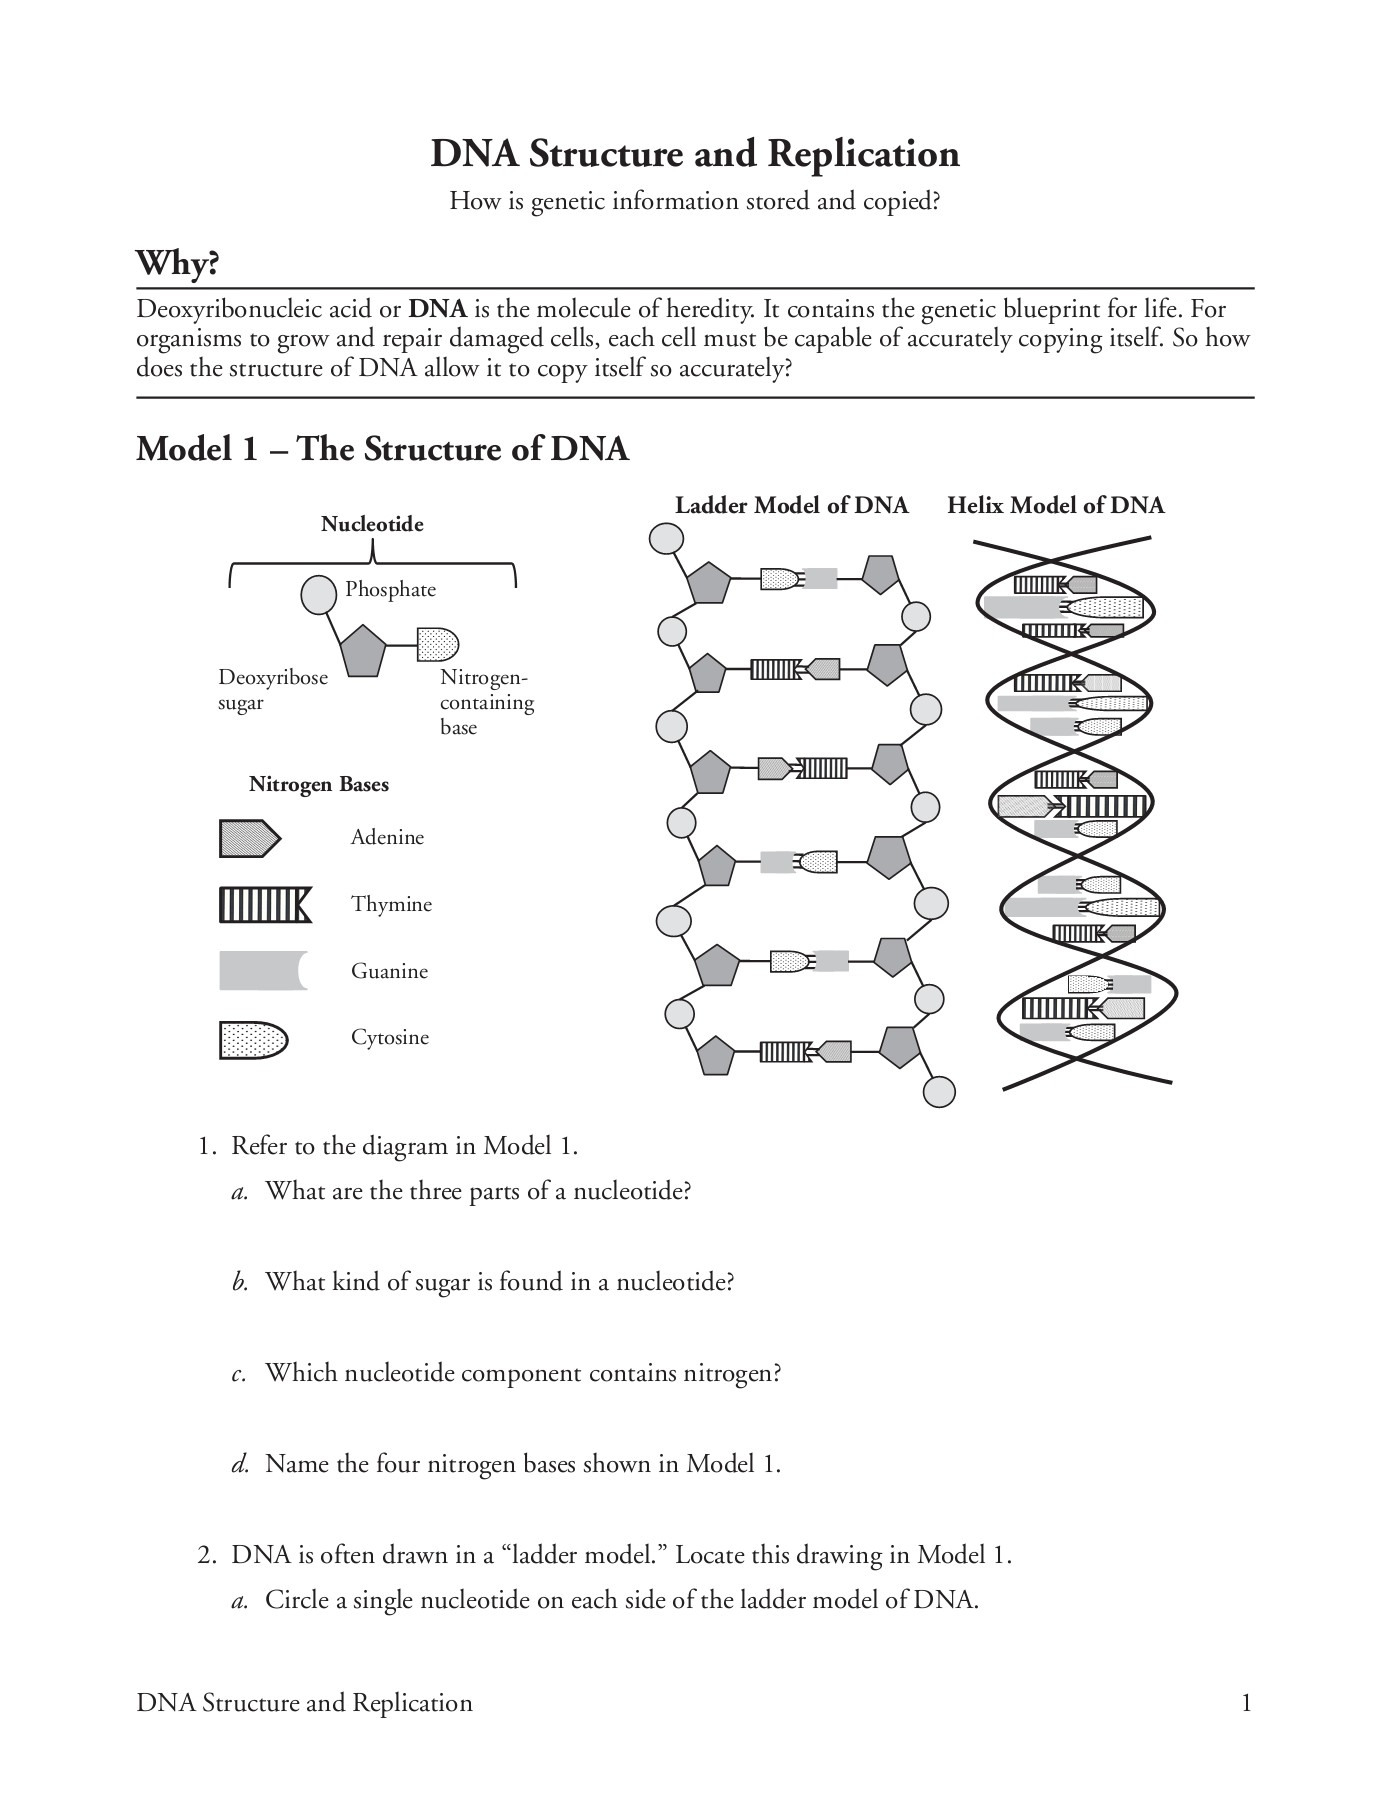 Dna Structure And Replication Worksheet Answers Key